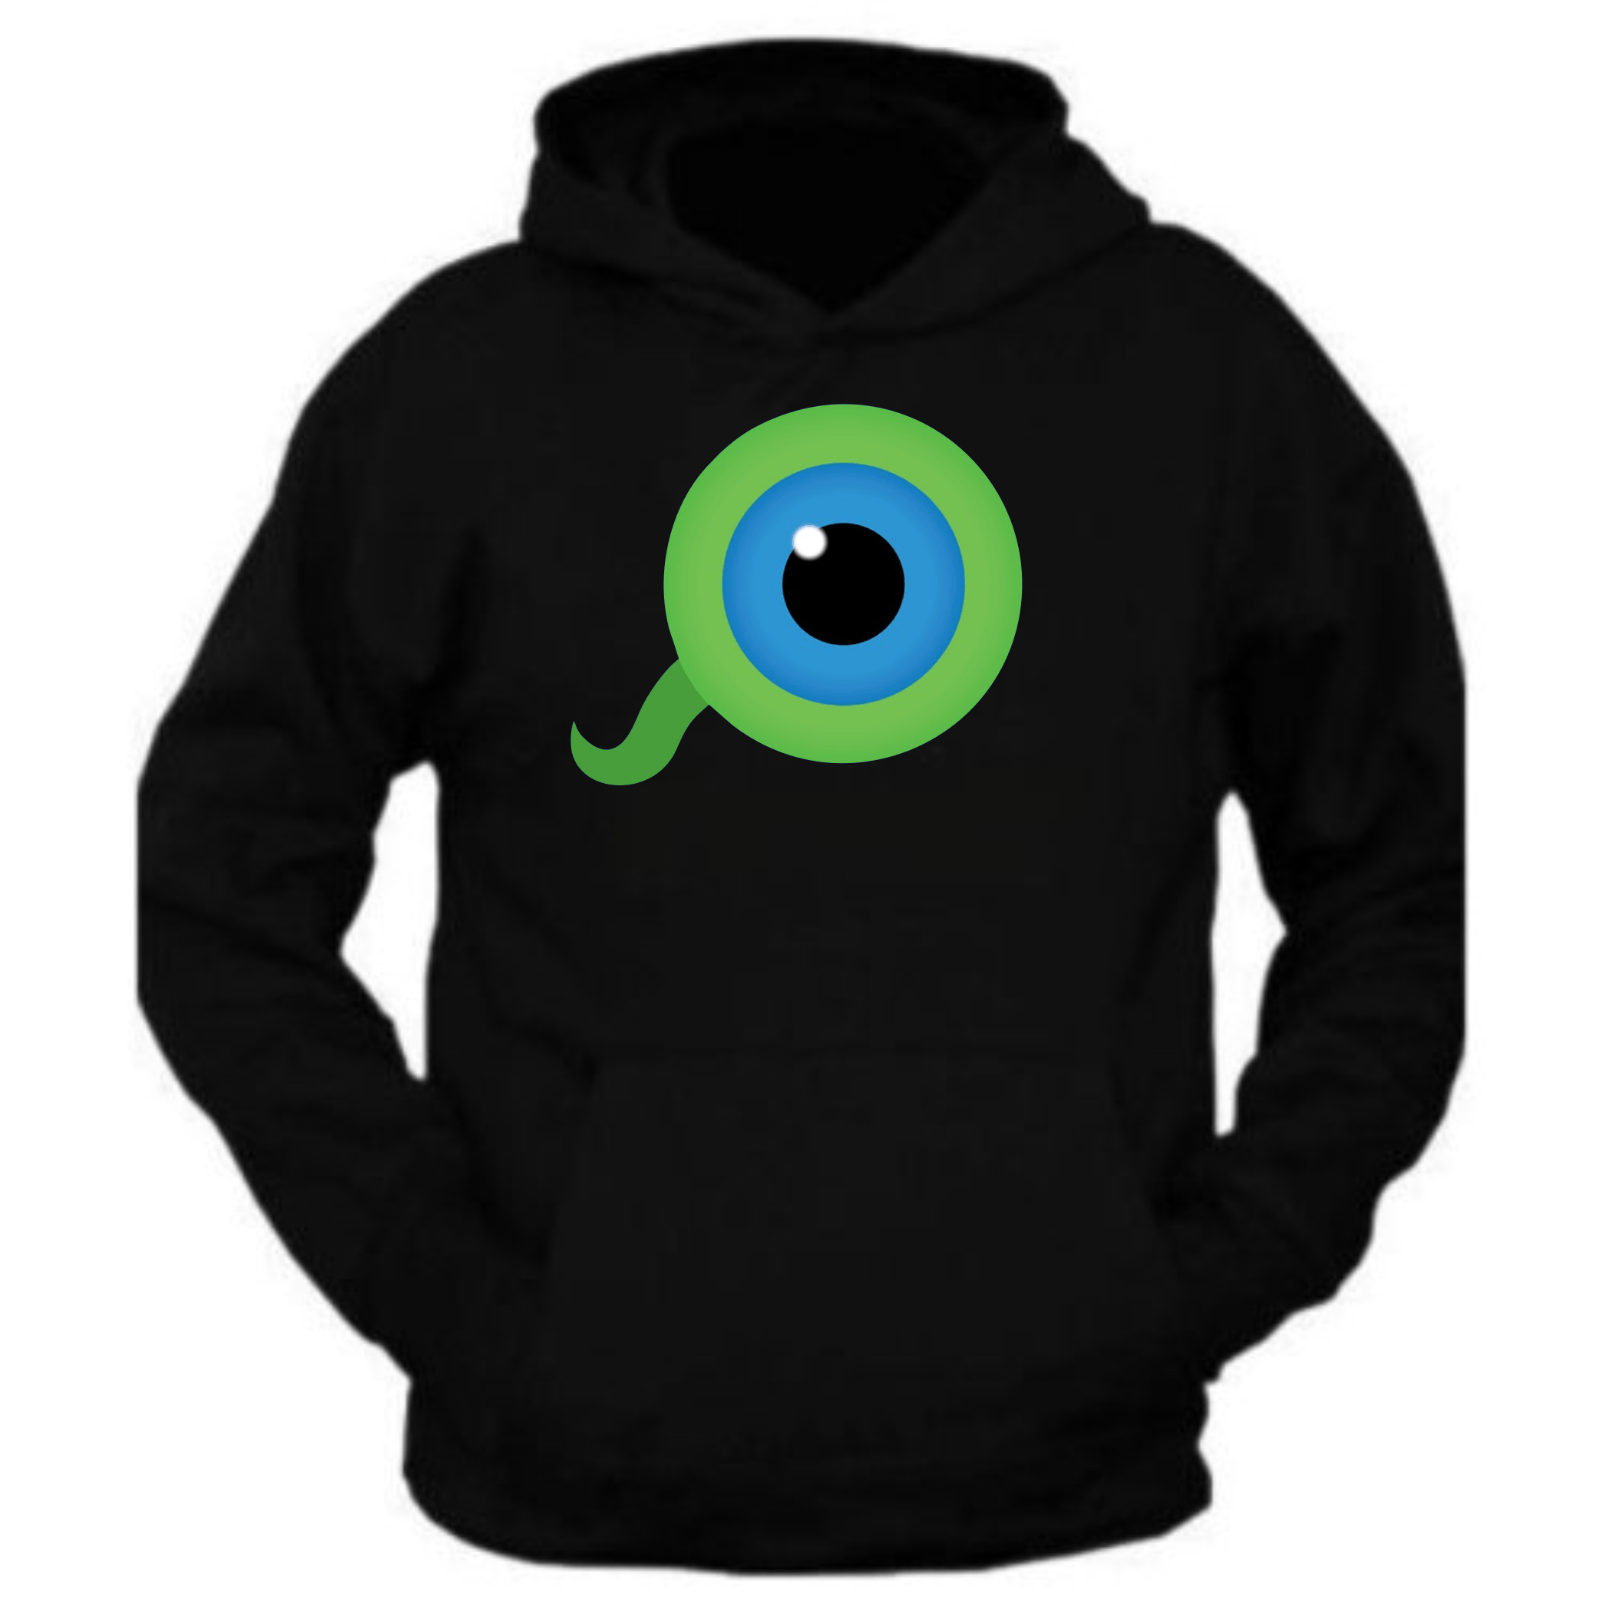 A Septic Eye details about jack septic eye personalised gaming adventure sweat childs  all ages 3-13